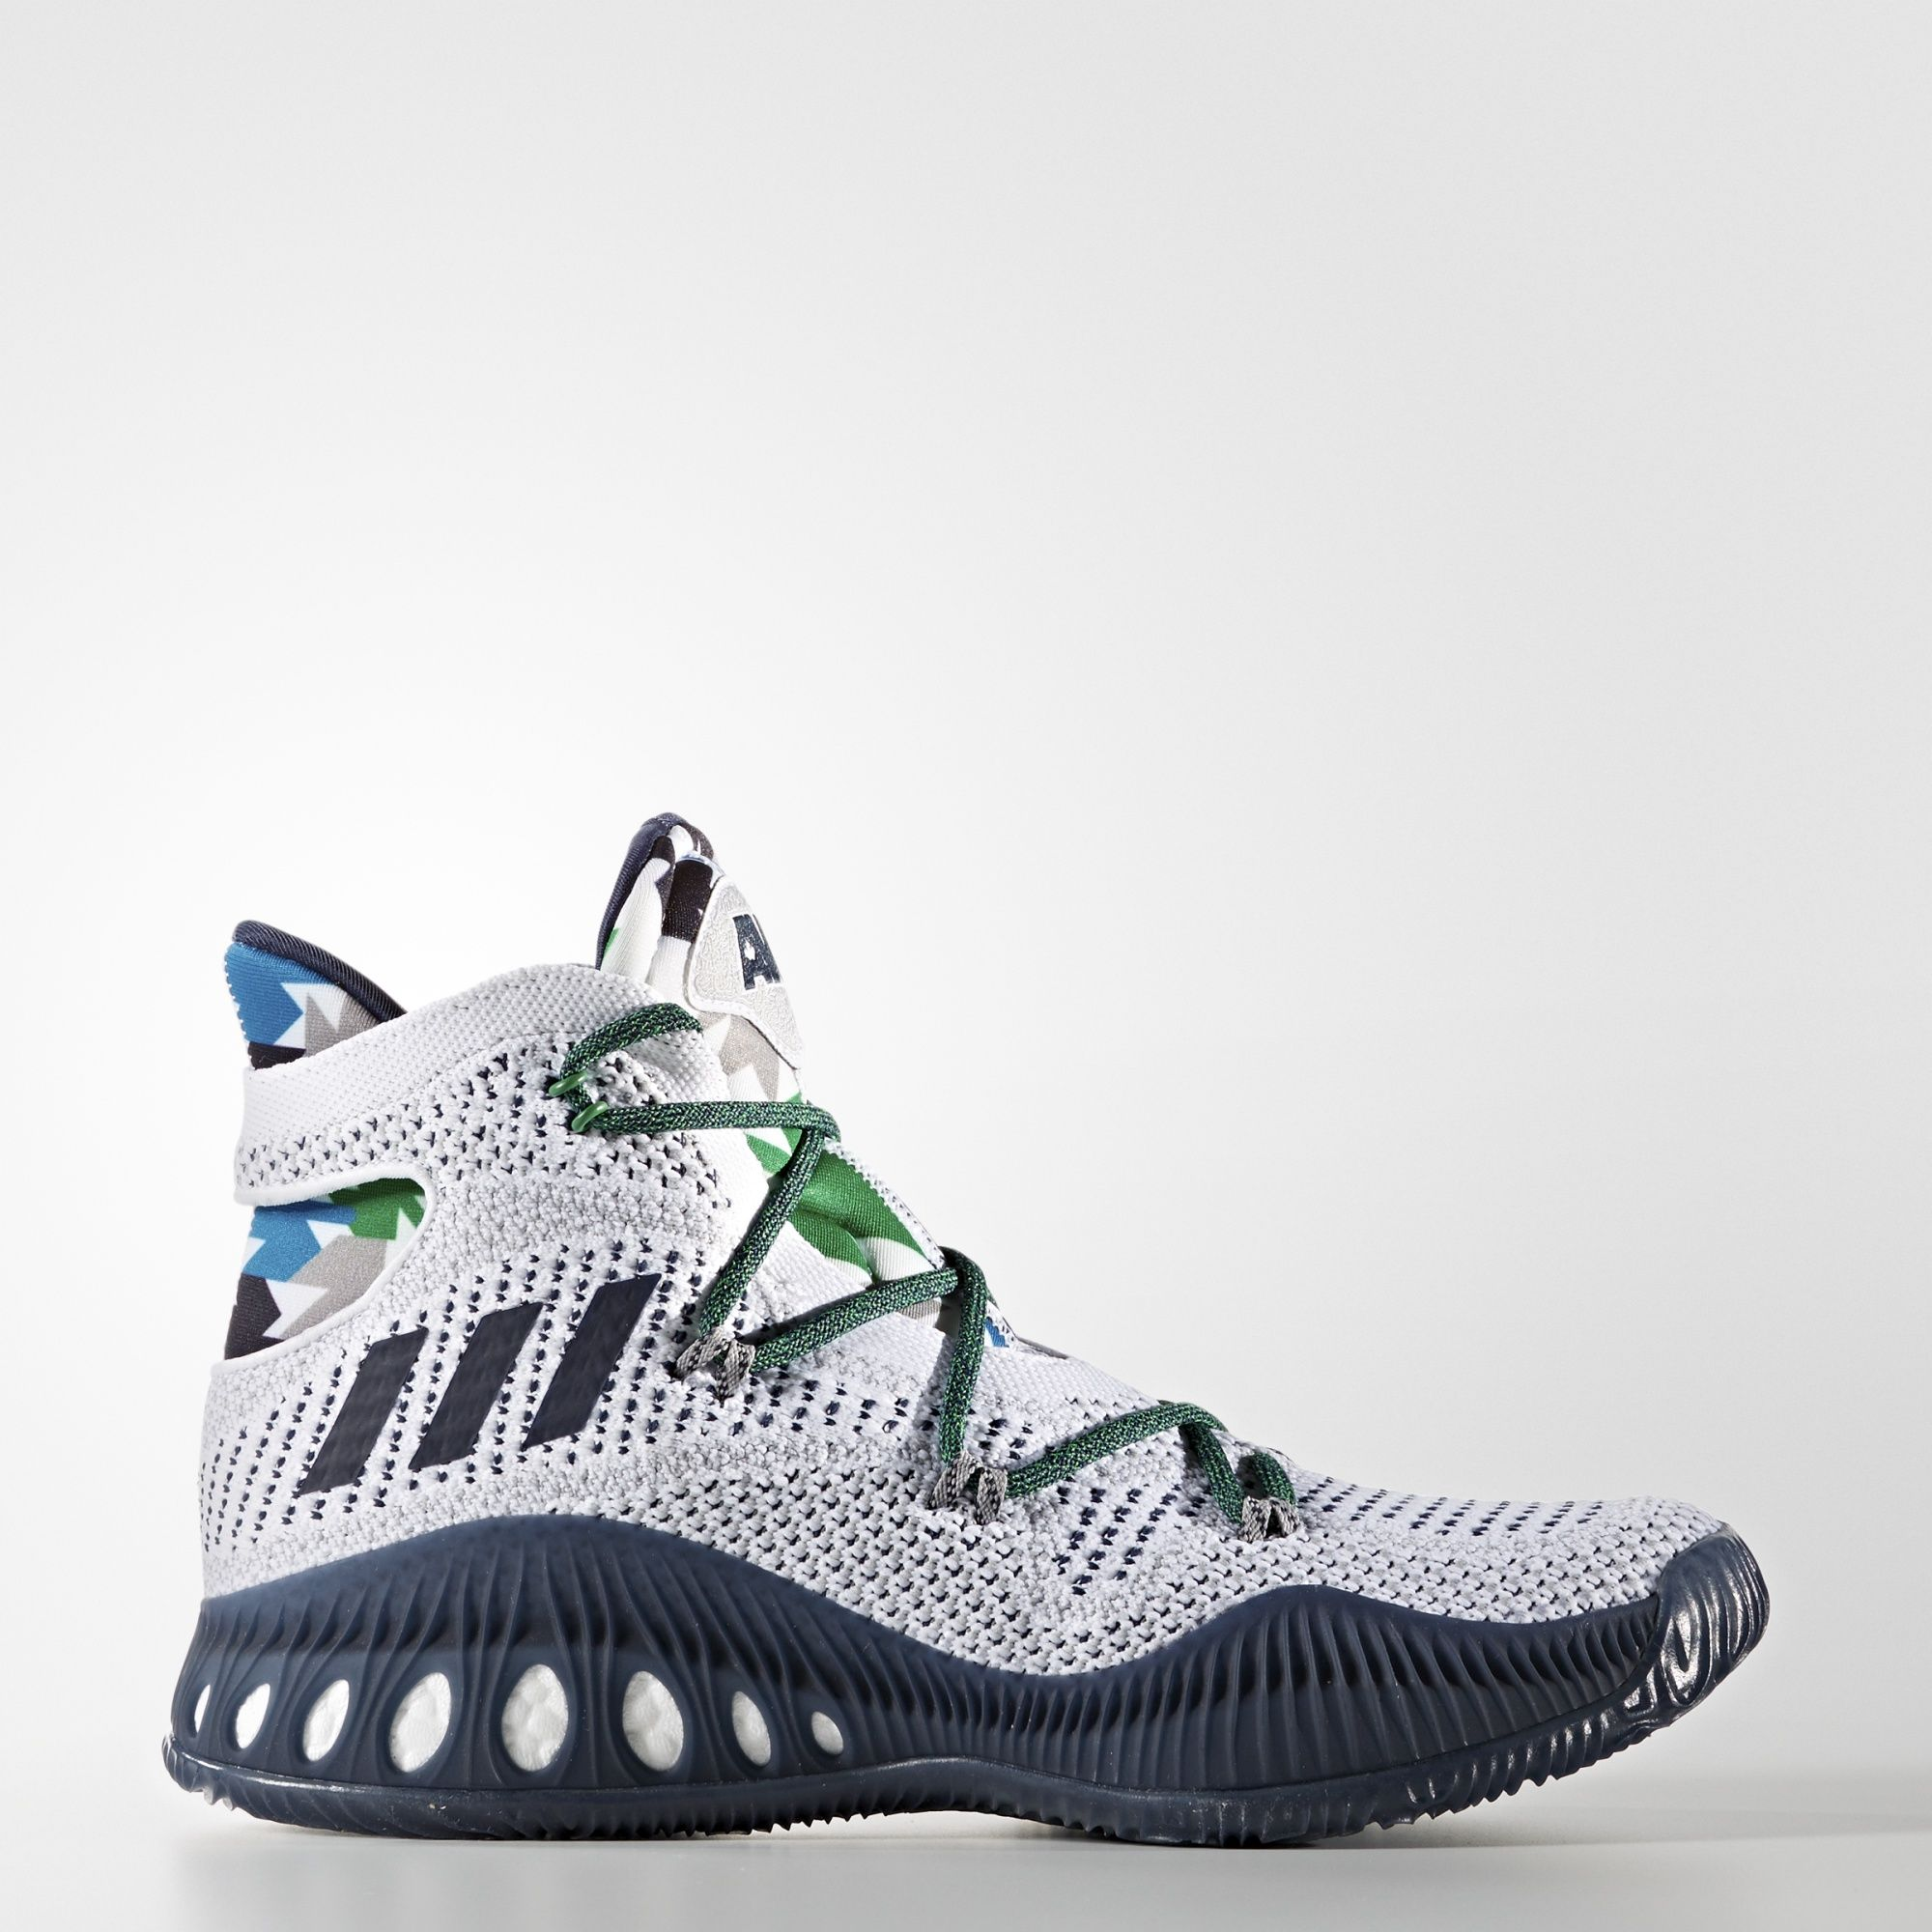 the-andrew-wiggins-pe-of-the-adidas-crazy-explosive-is-available-now-1